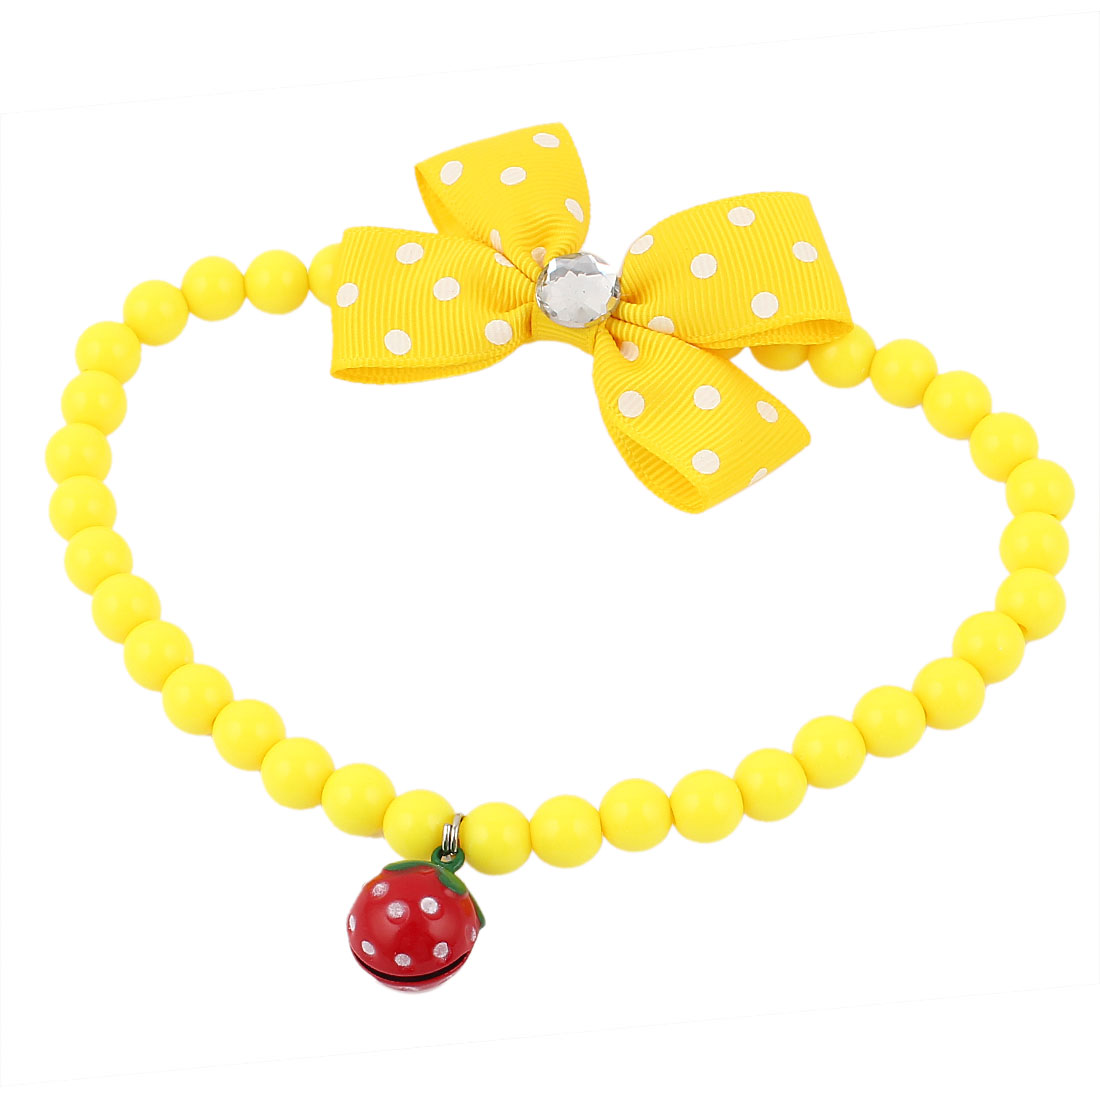 Faux Crystal Bowtie Accent Pet Dog Plastic Beads Collar Necklace Yellow L